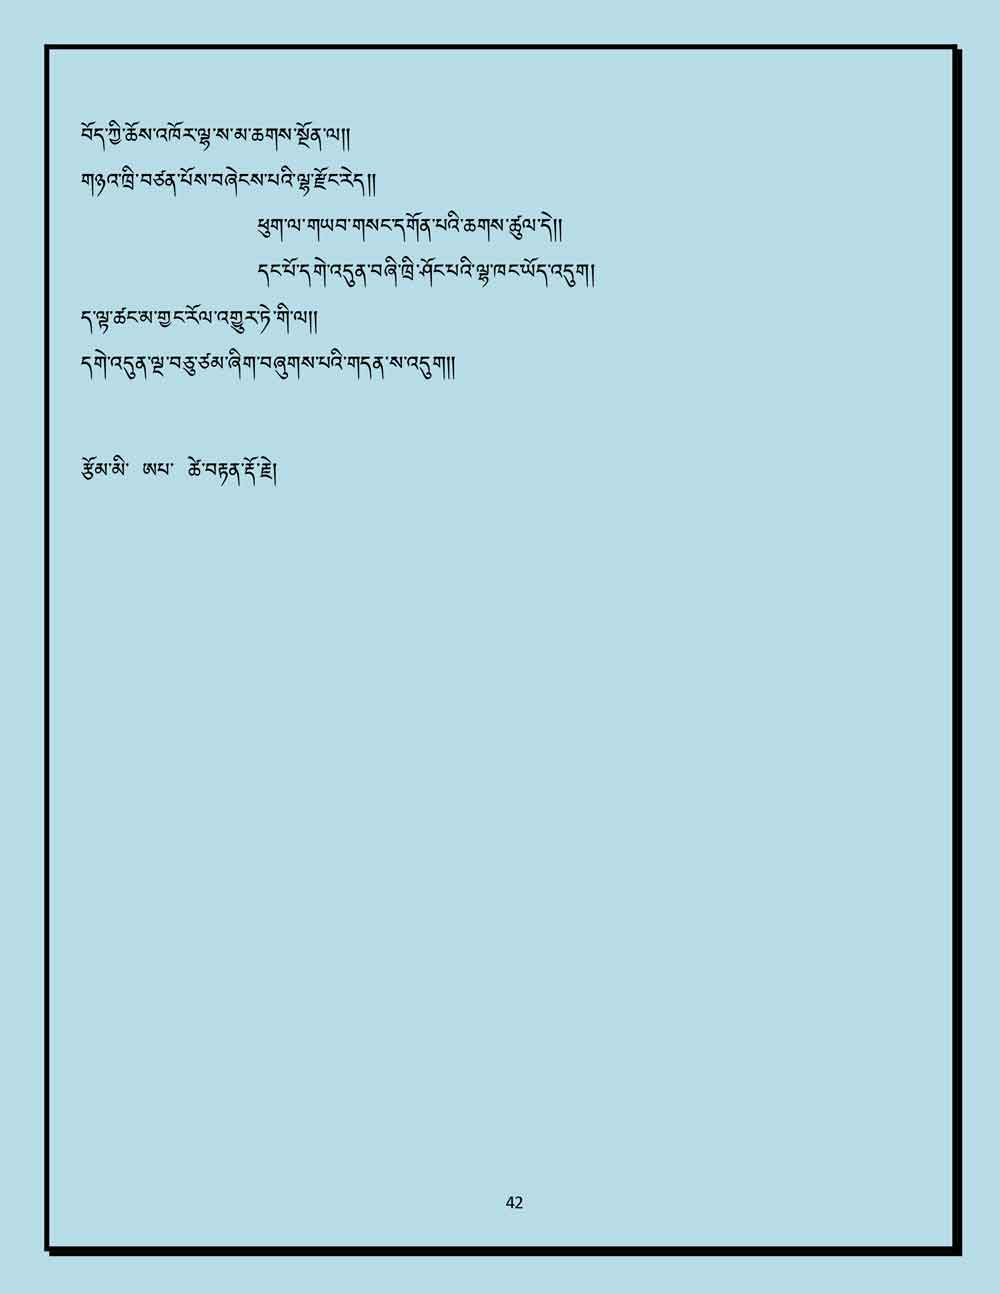 Ap-Tseten-Lyrics-42.jpg